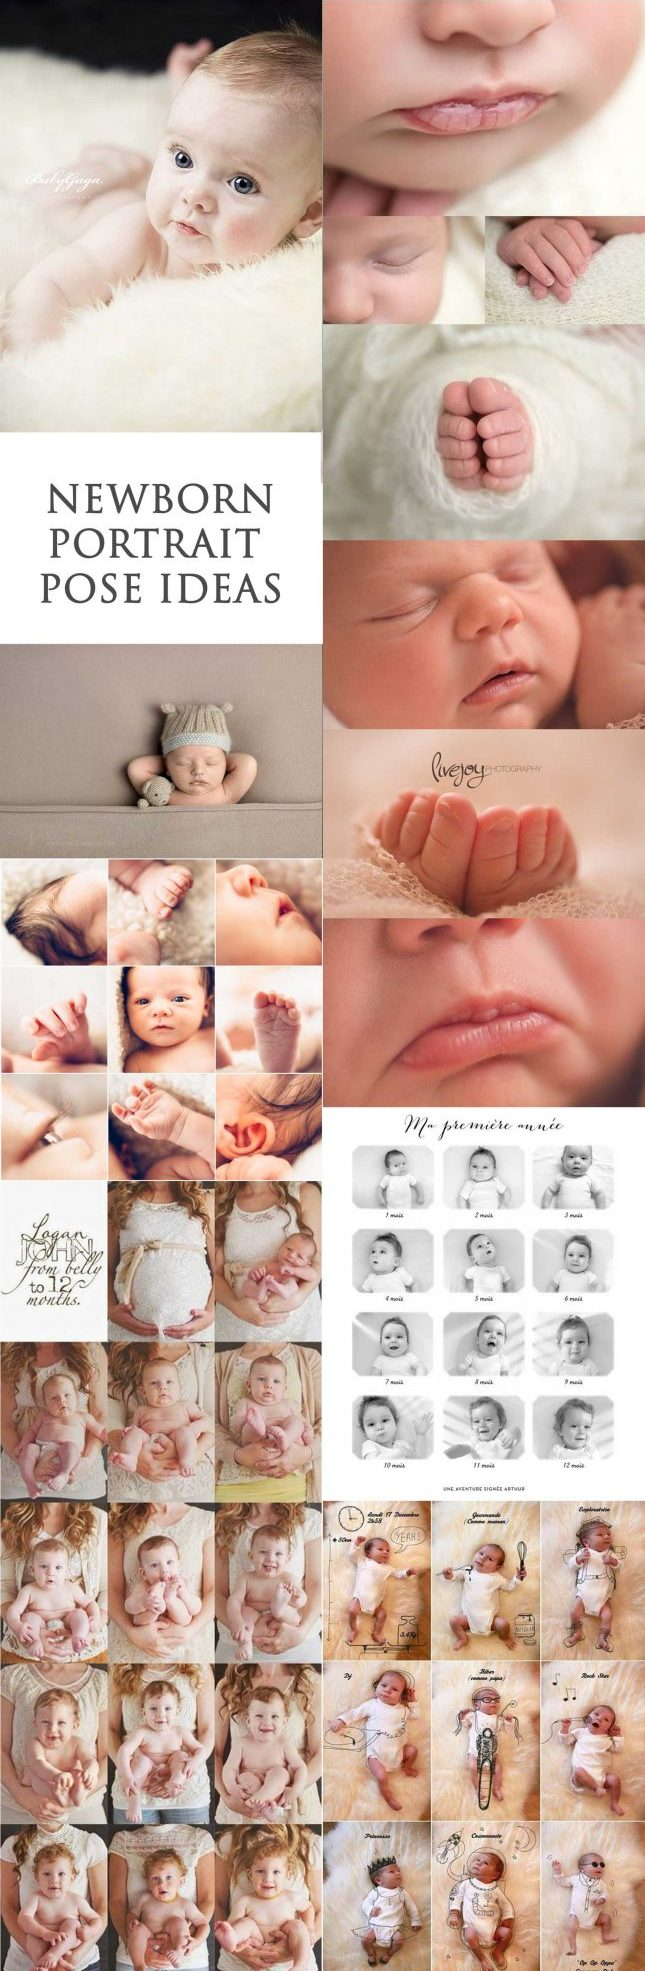 2019 Trend of Newborn Photography Ideas & Tips for Poses